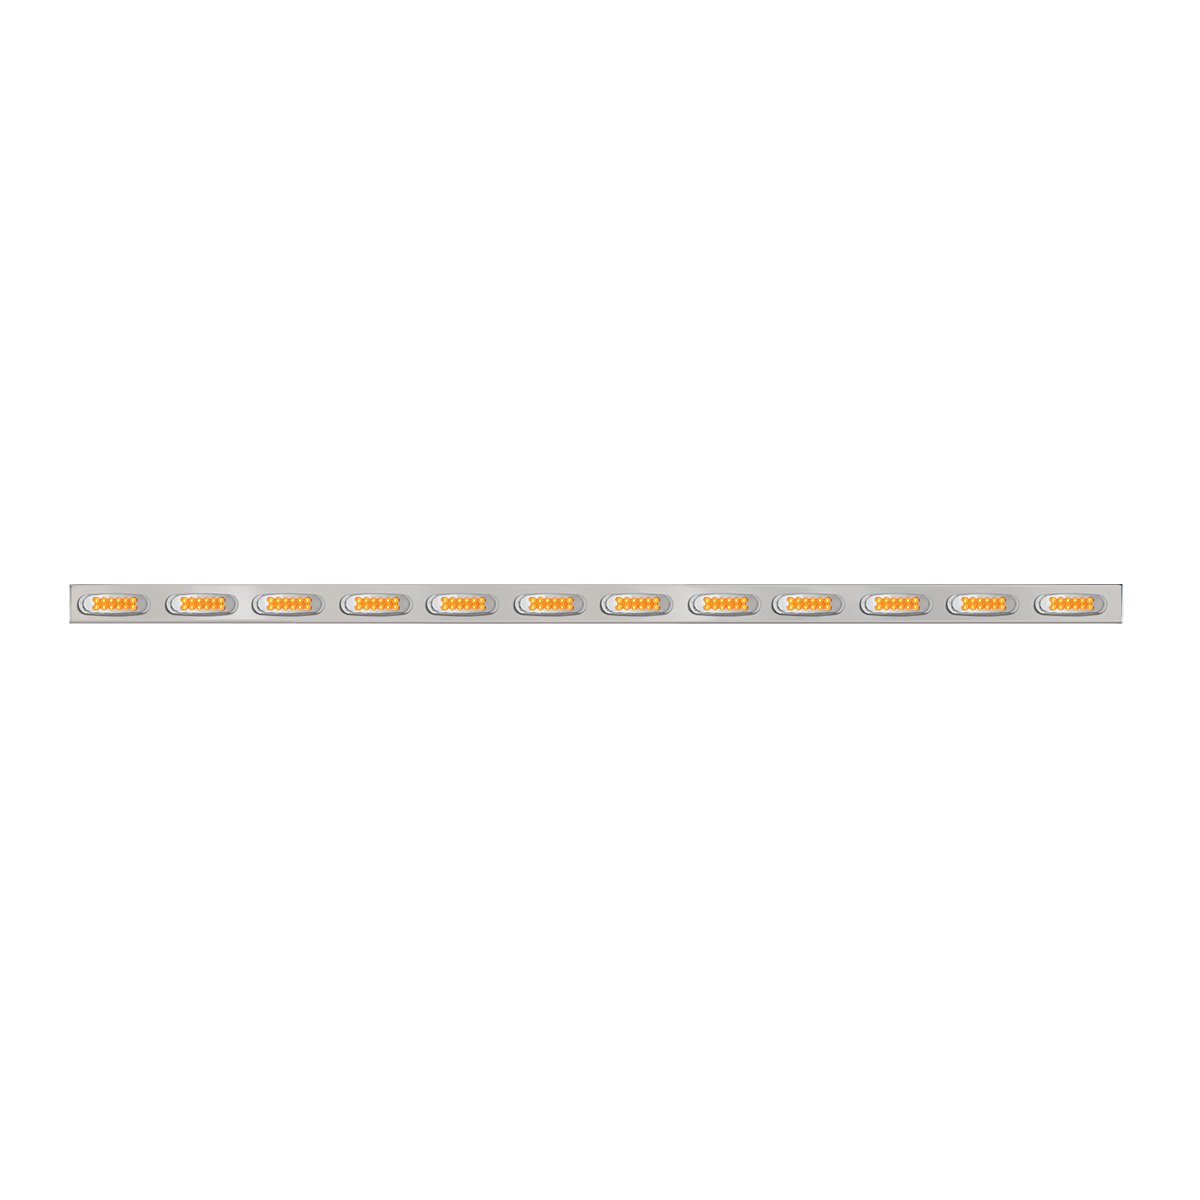 #81722/#81723 Front Bumper Ultra Thin Spyder Y2K 7-LED Marker Light Bar